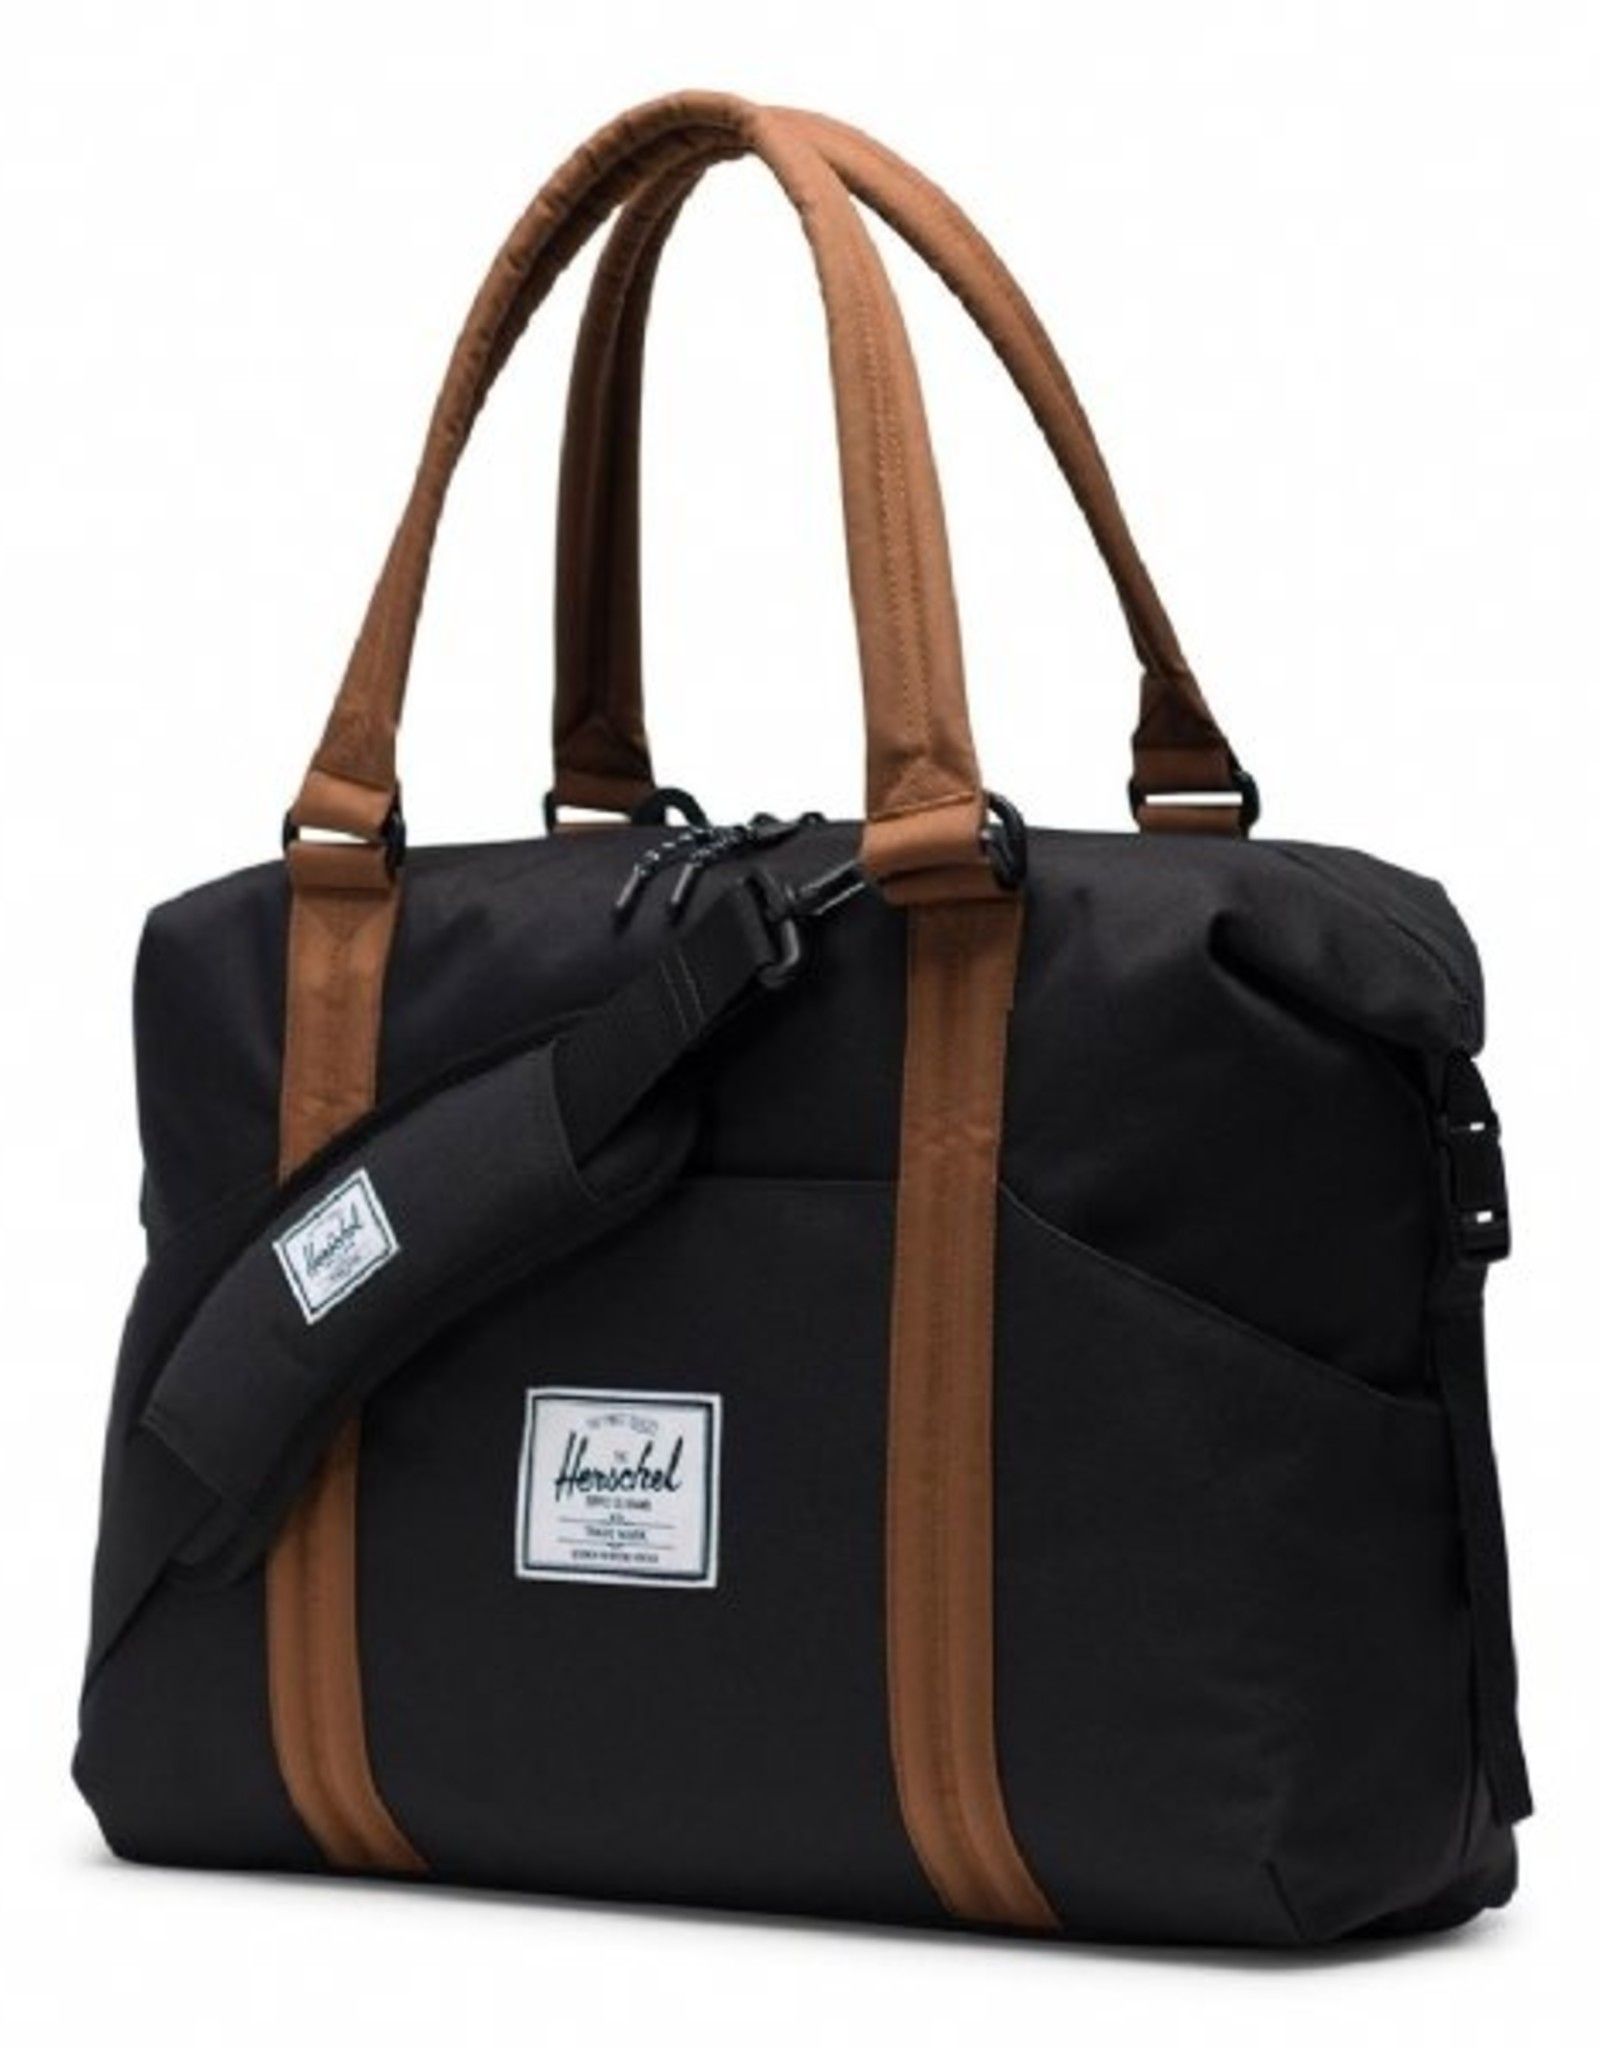 Herschel Supply Co. Strand Tote Diaper Bag -black brown